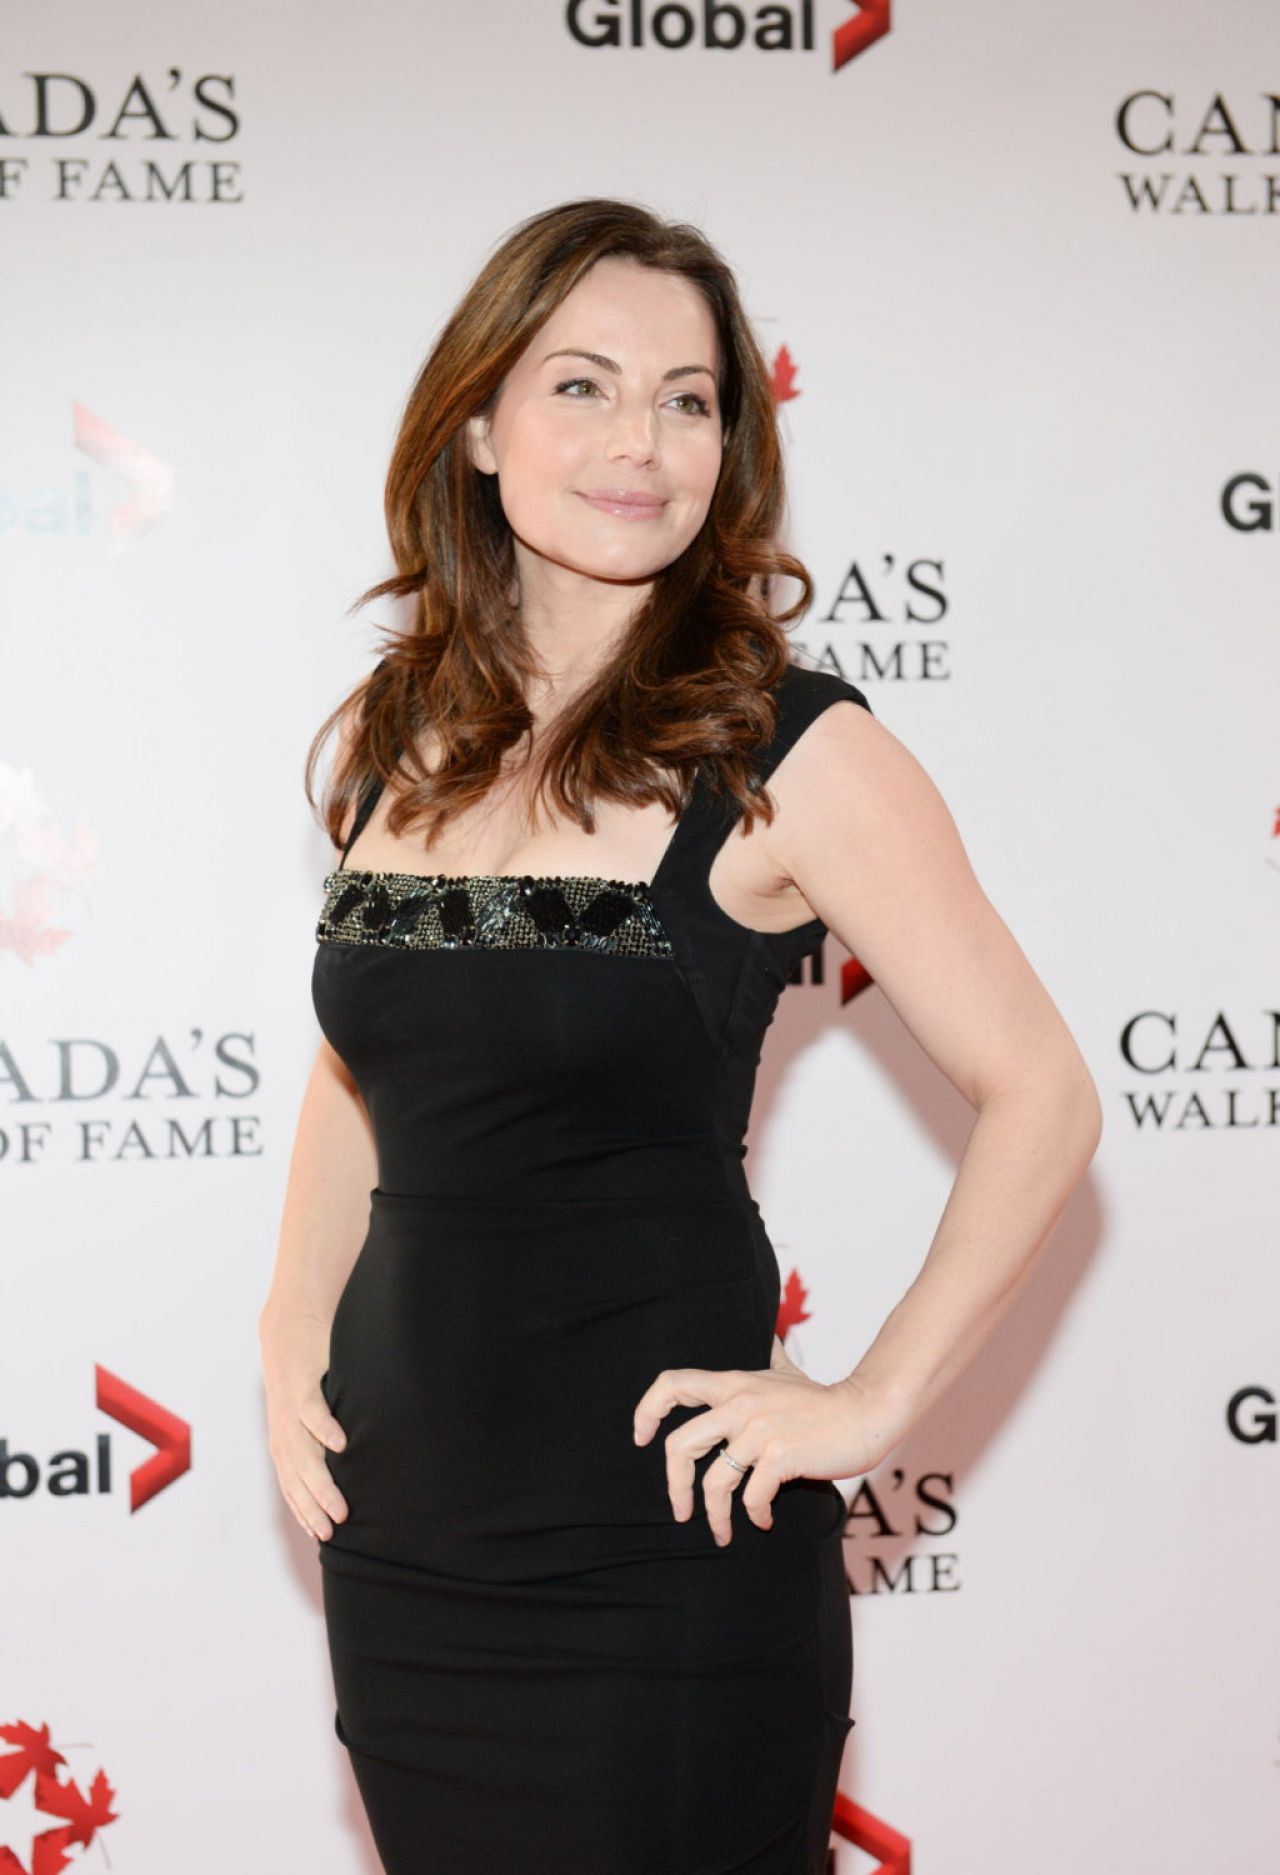 Erica Durance Latest Photos Celebmafia